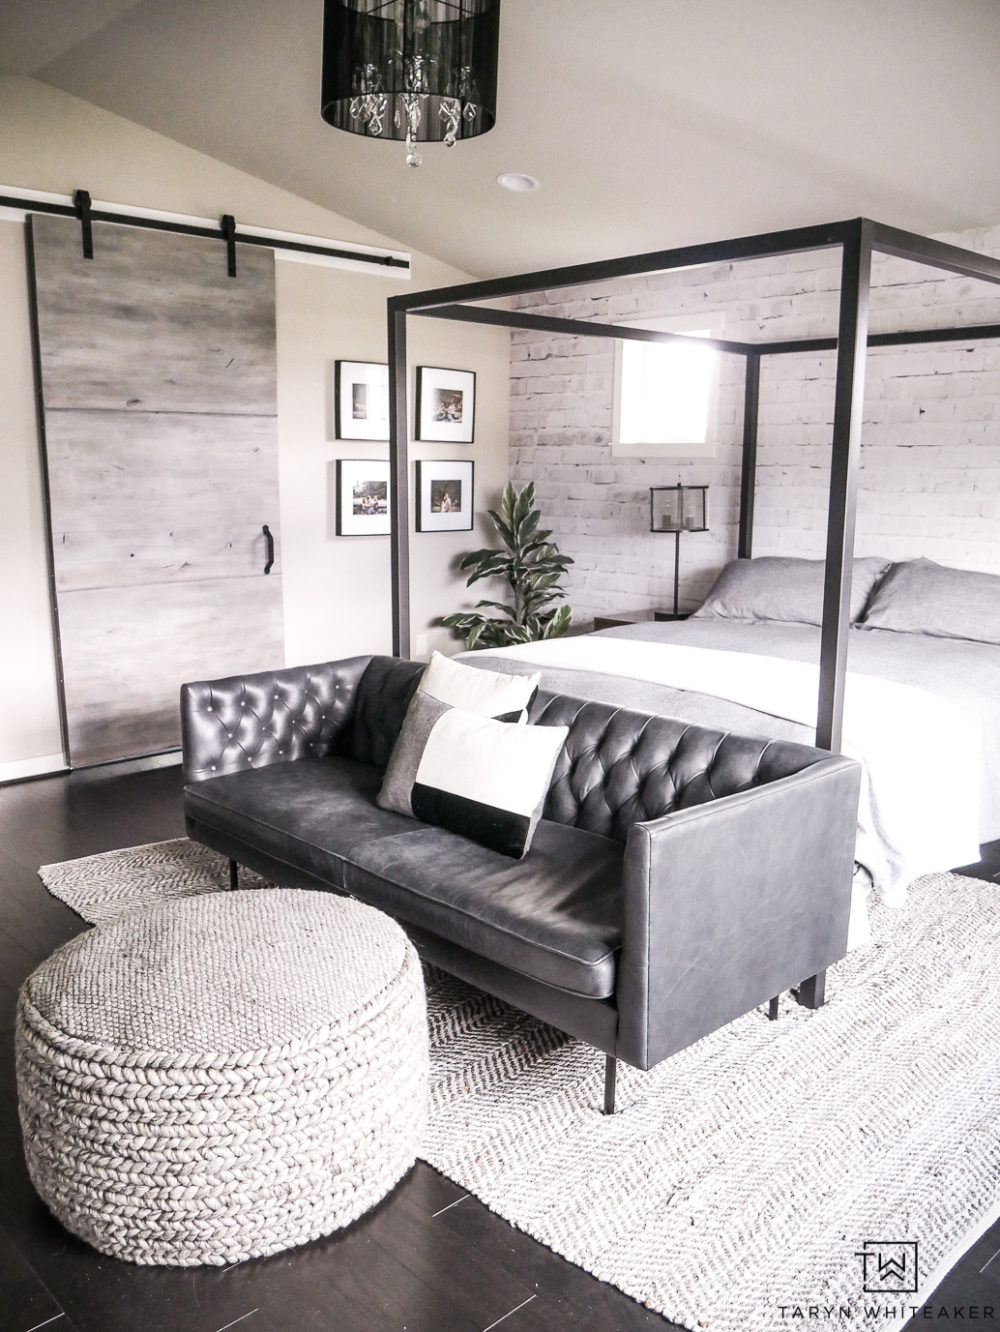 Create a cozy but modern Master Bedroom Seating Area by placing a sofa in front of a canopy and finishing it off with a textured gray ottoman and rug.